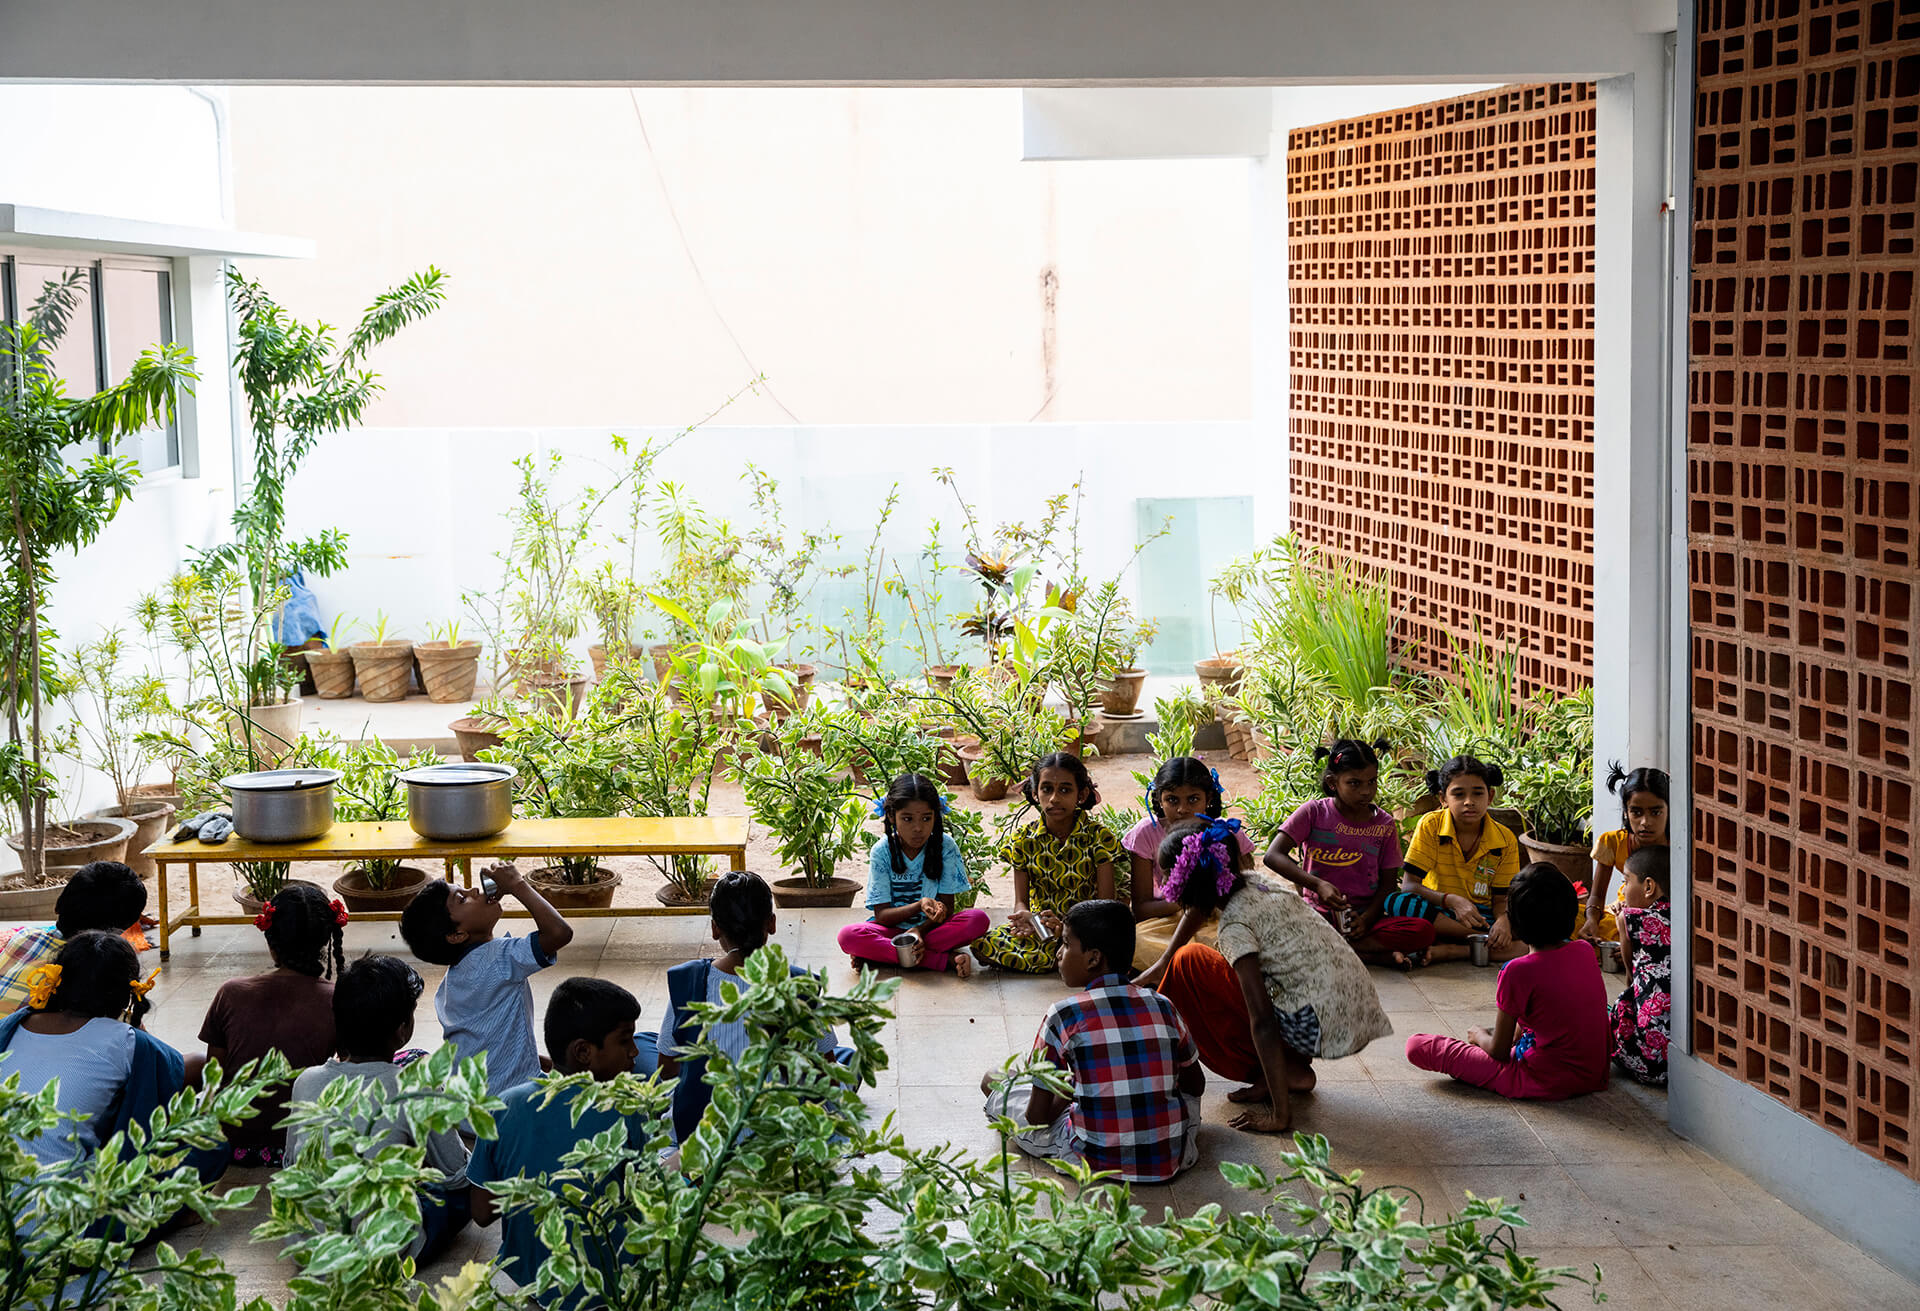 The inner green courtyard which is central to the spaces | Sharana Daycare Facility | Anupama Kundoo Architects | STIRworld